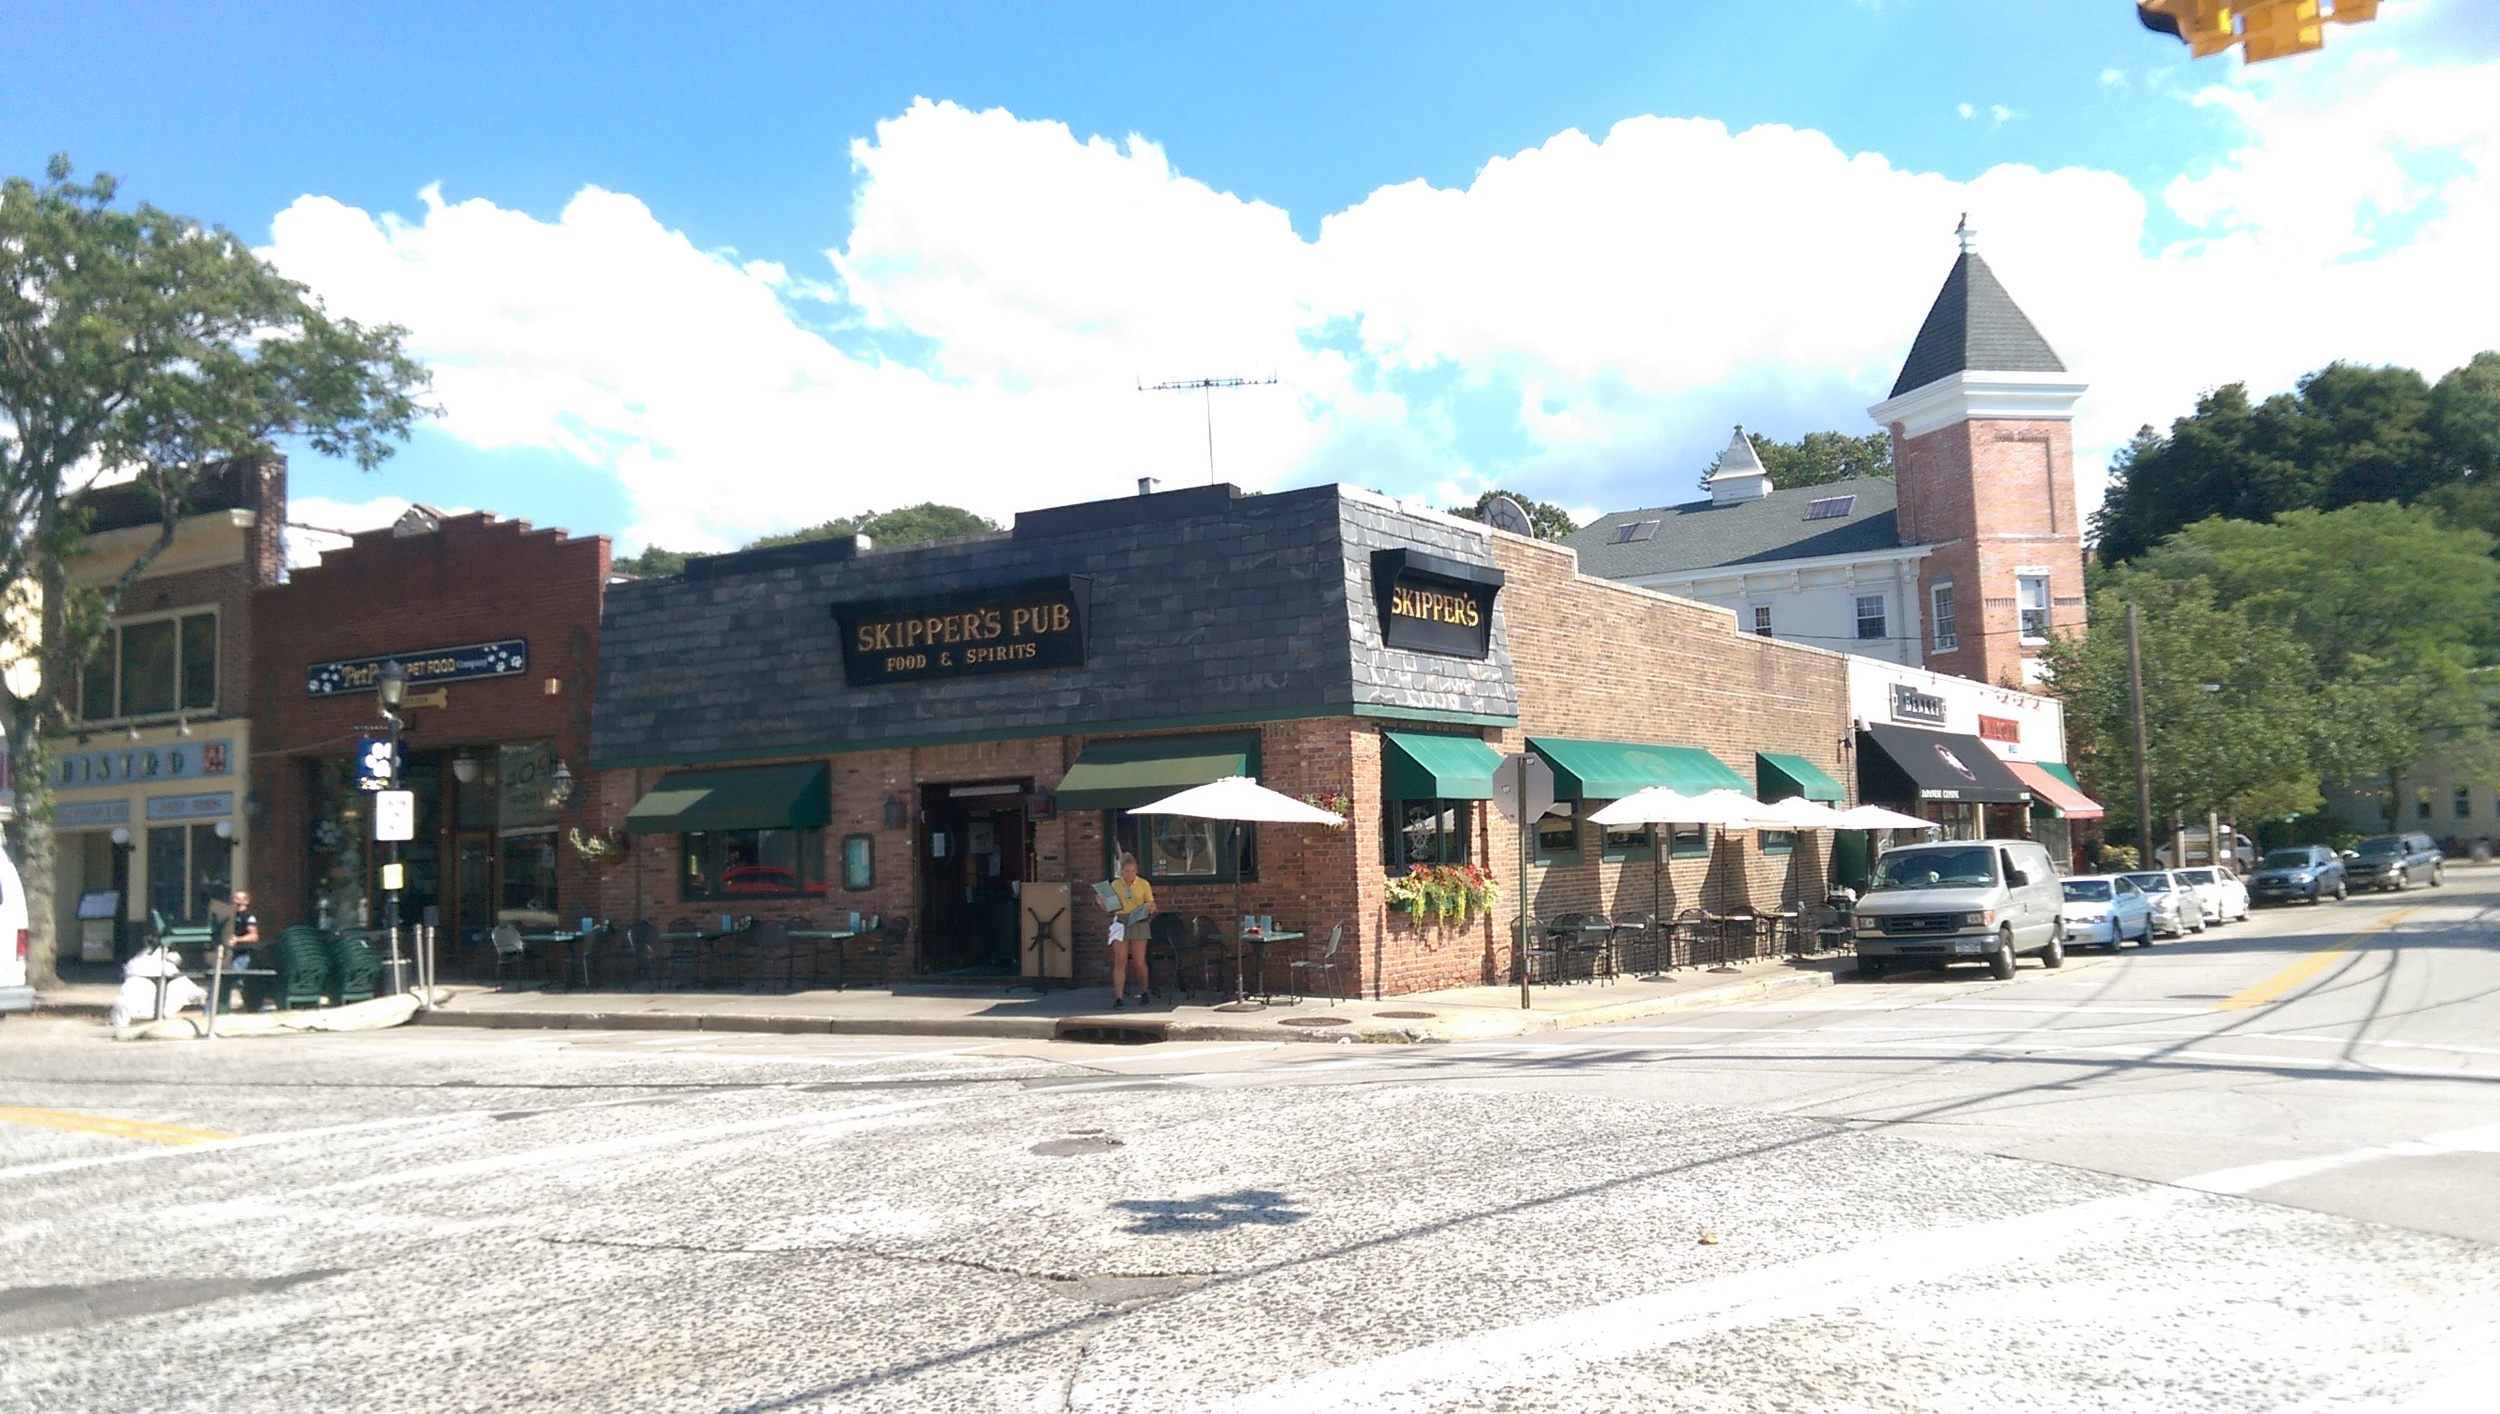 The owners of Skipper's Pub in Northport want a judge to set aside the denial of their application for rooftop dining.